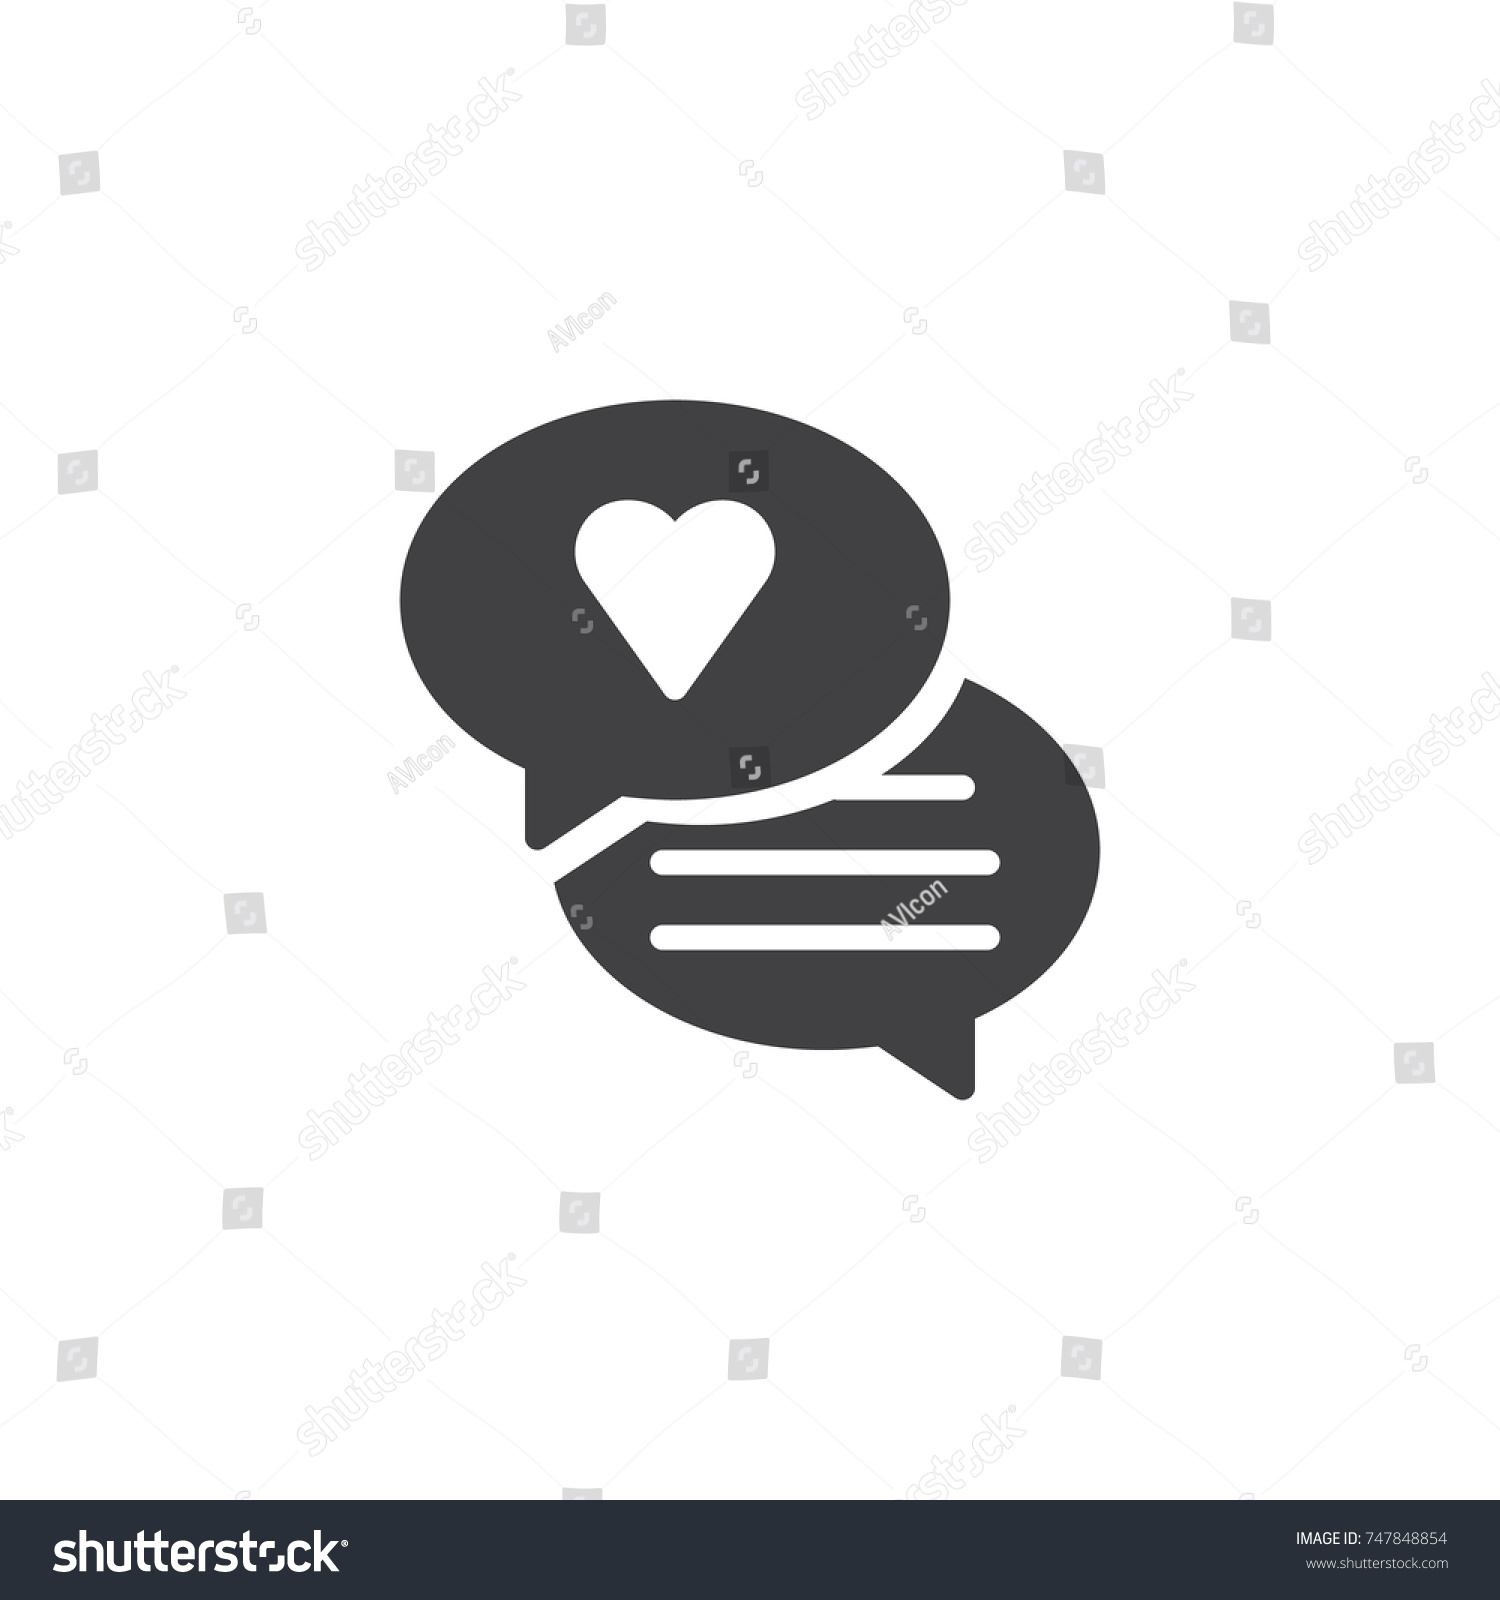 Speech bubble heart icon vector filled stock vector 747848854 speech bubble with heart icon vector filled flat sign solid pictogram isolated on white biocorpaavc